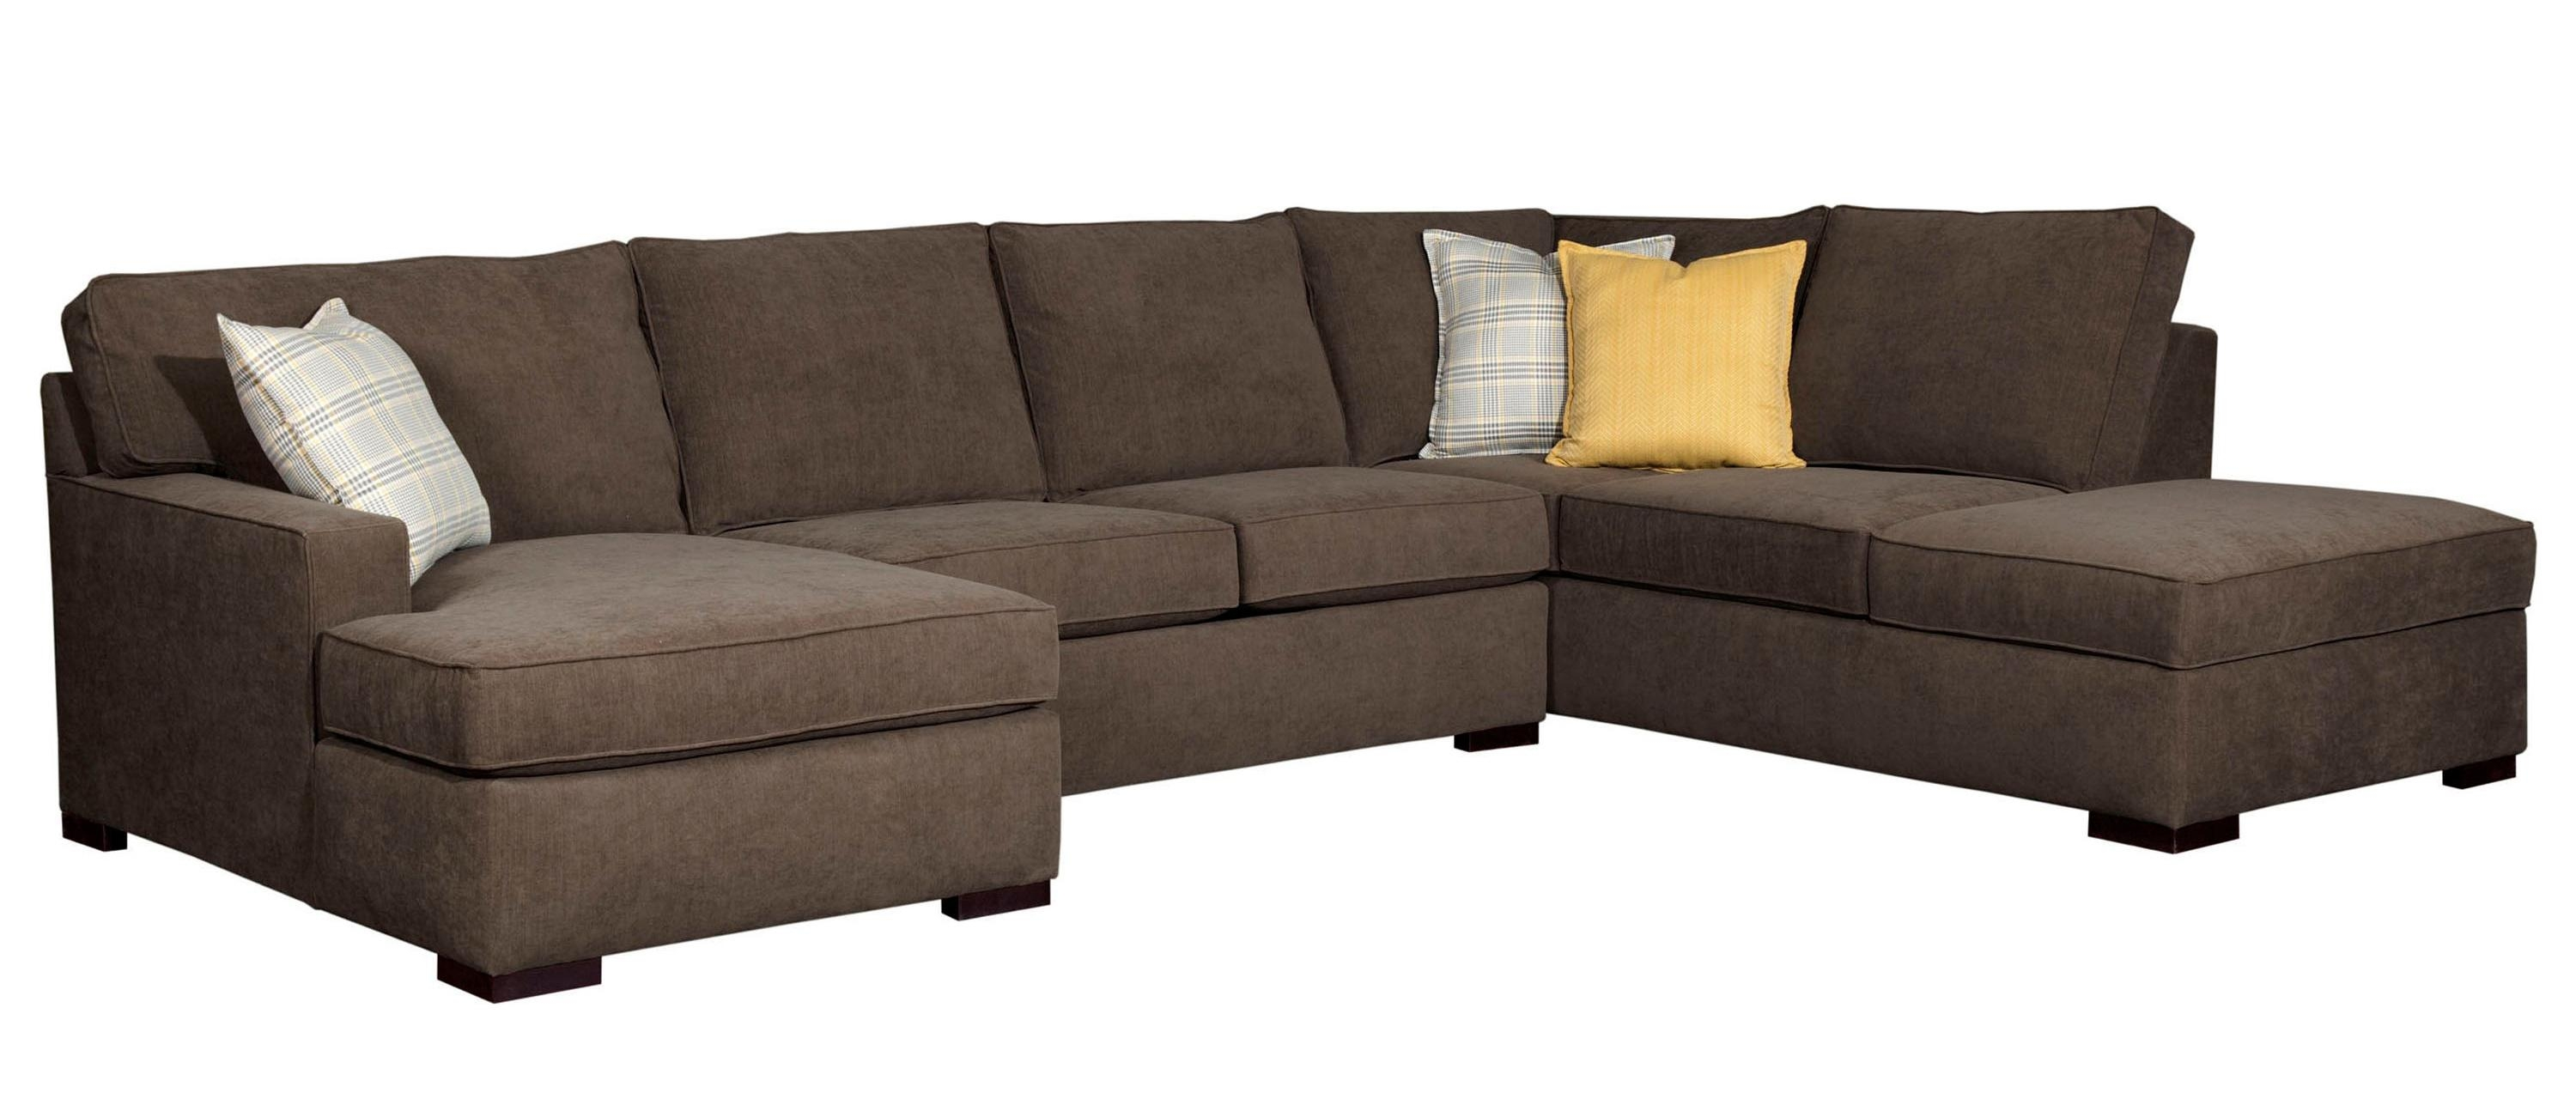 Raphael Three Piece Sectional Sofa Broyhill Furniture Home With Regard To Broyhill Sectional Sofas (#11 of 12)